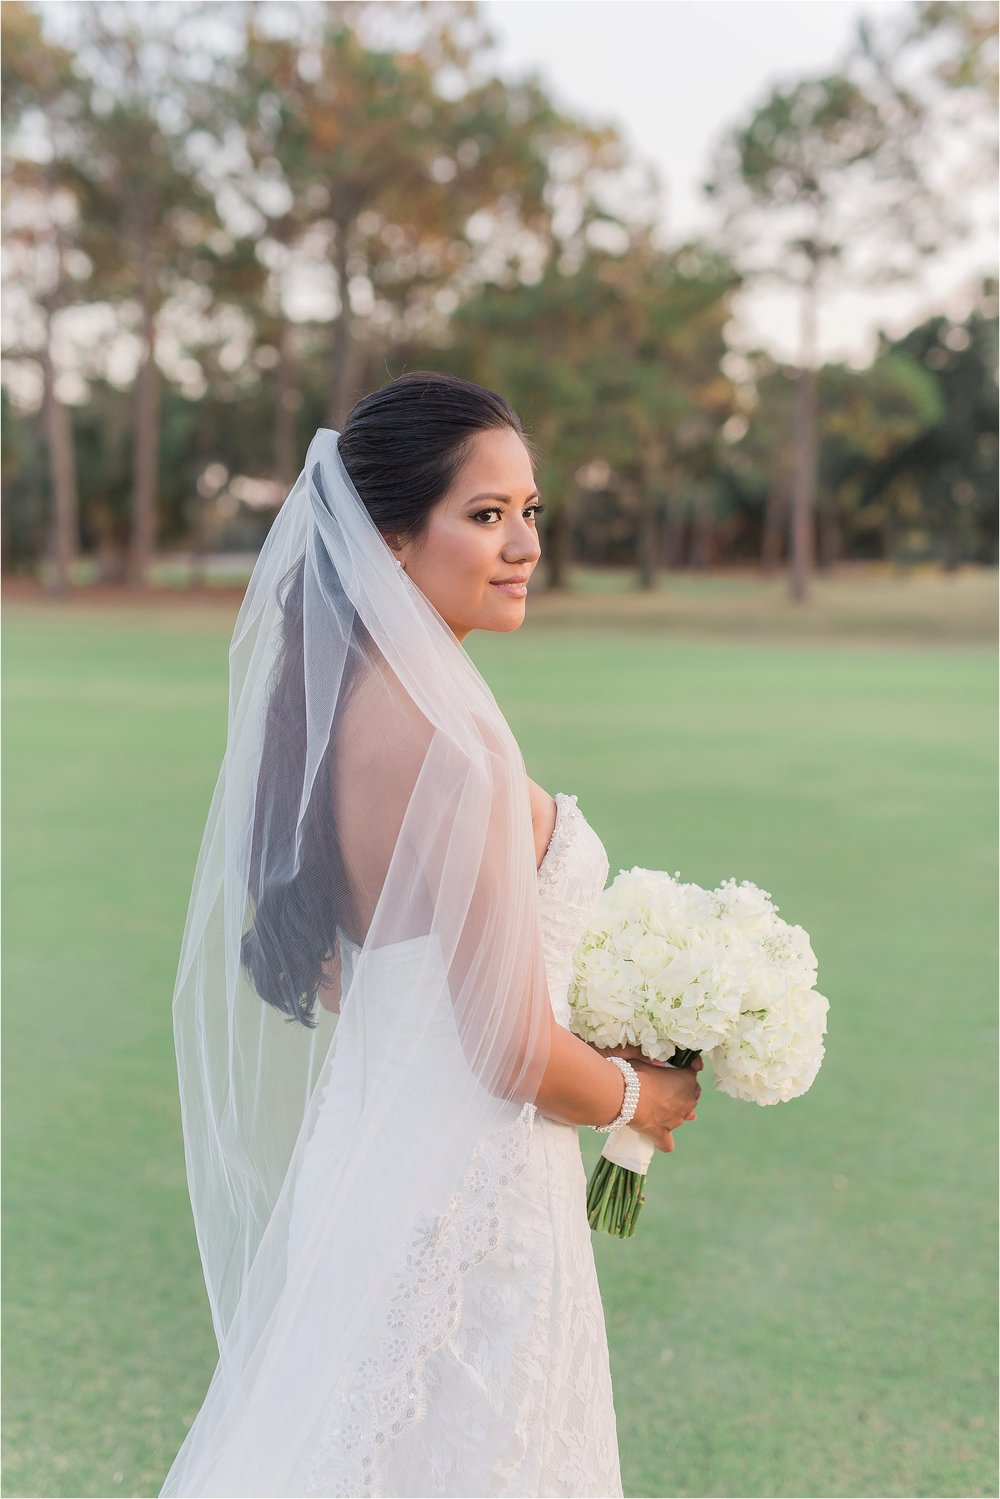 Bridal Portrait with All White Rose Bouquet and Cathedral Length Veil.